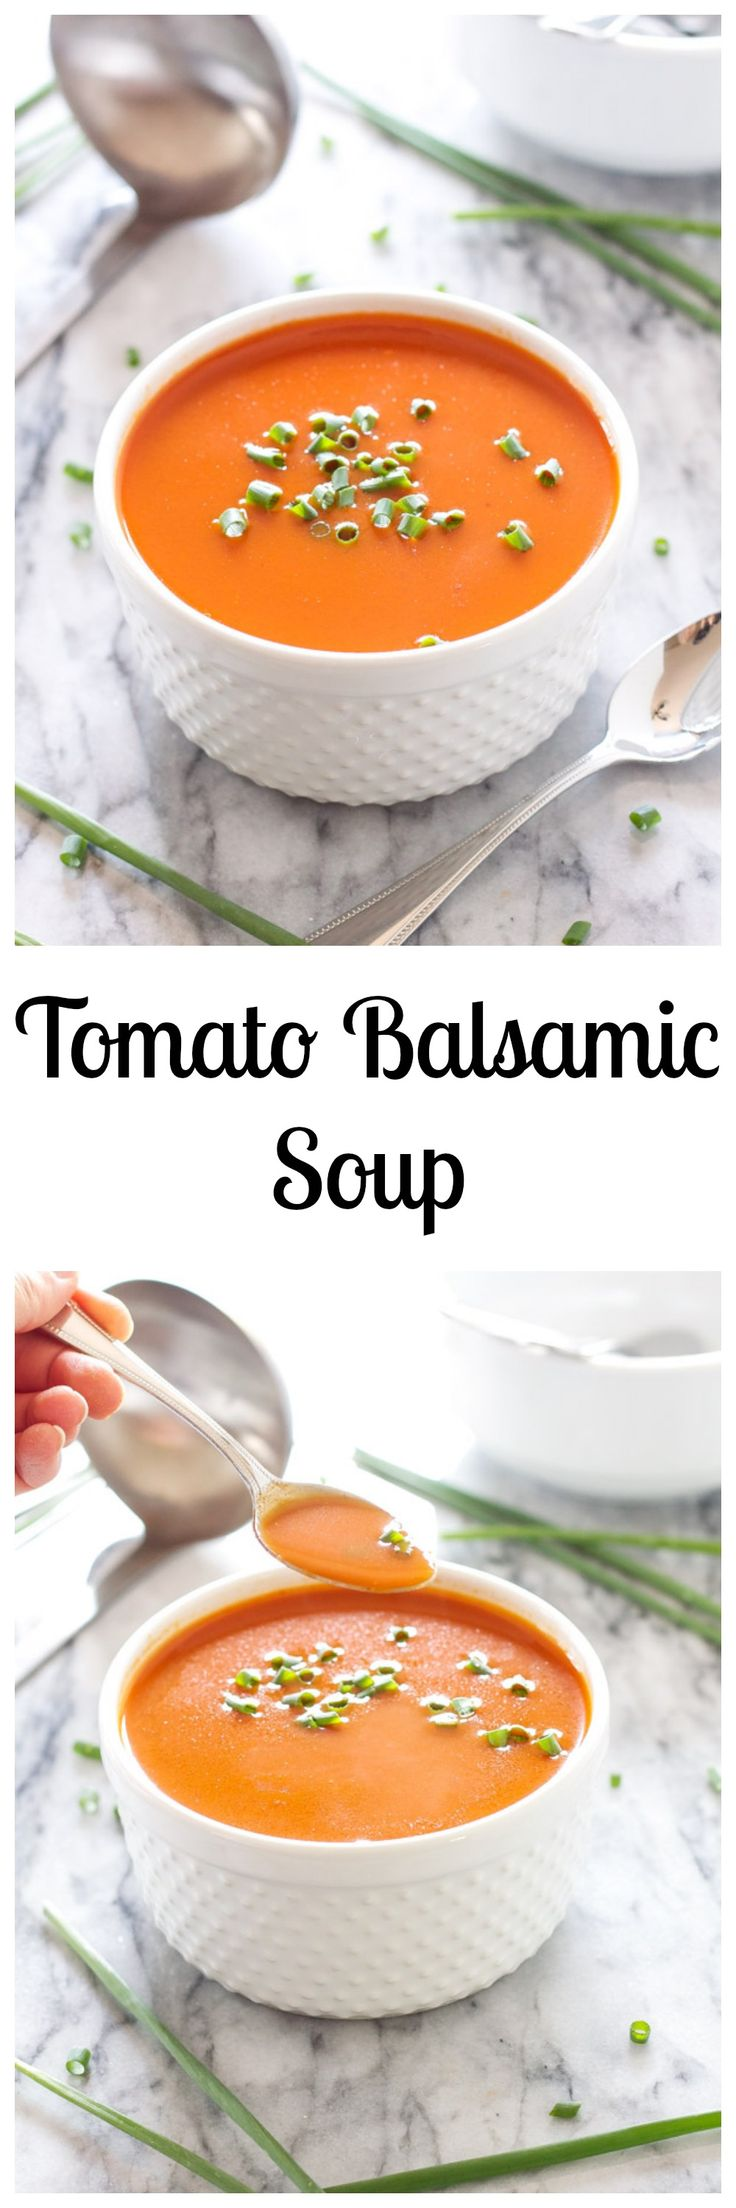 Tomato Balsamic Soup | Recipe Runner | Silky smooth tomato soup with the tart sweetness of balsamic vinegar!